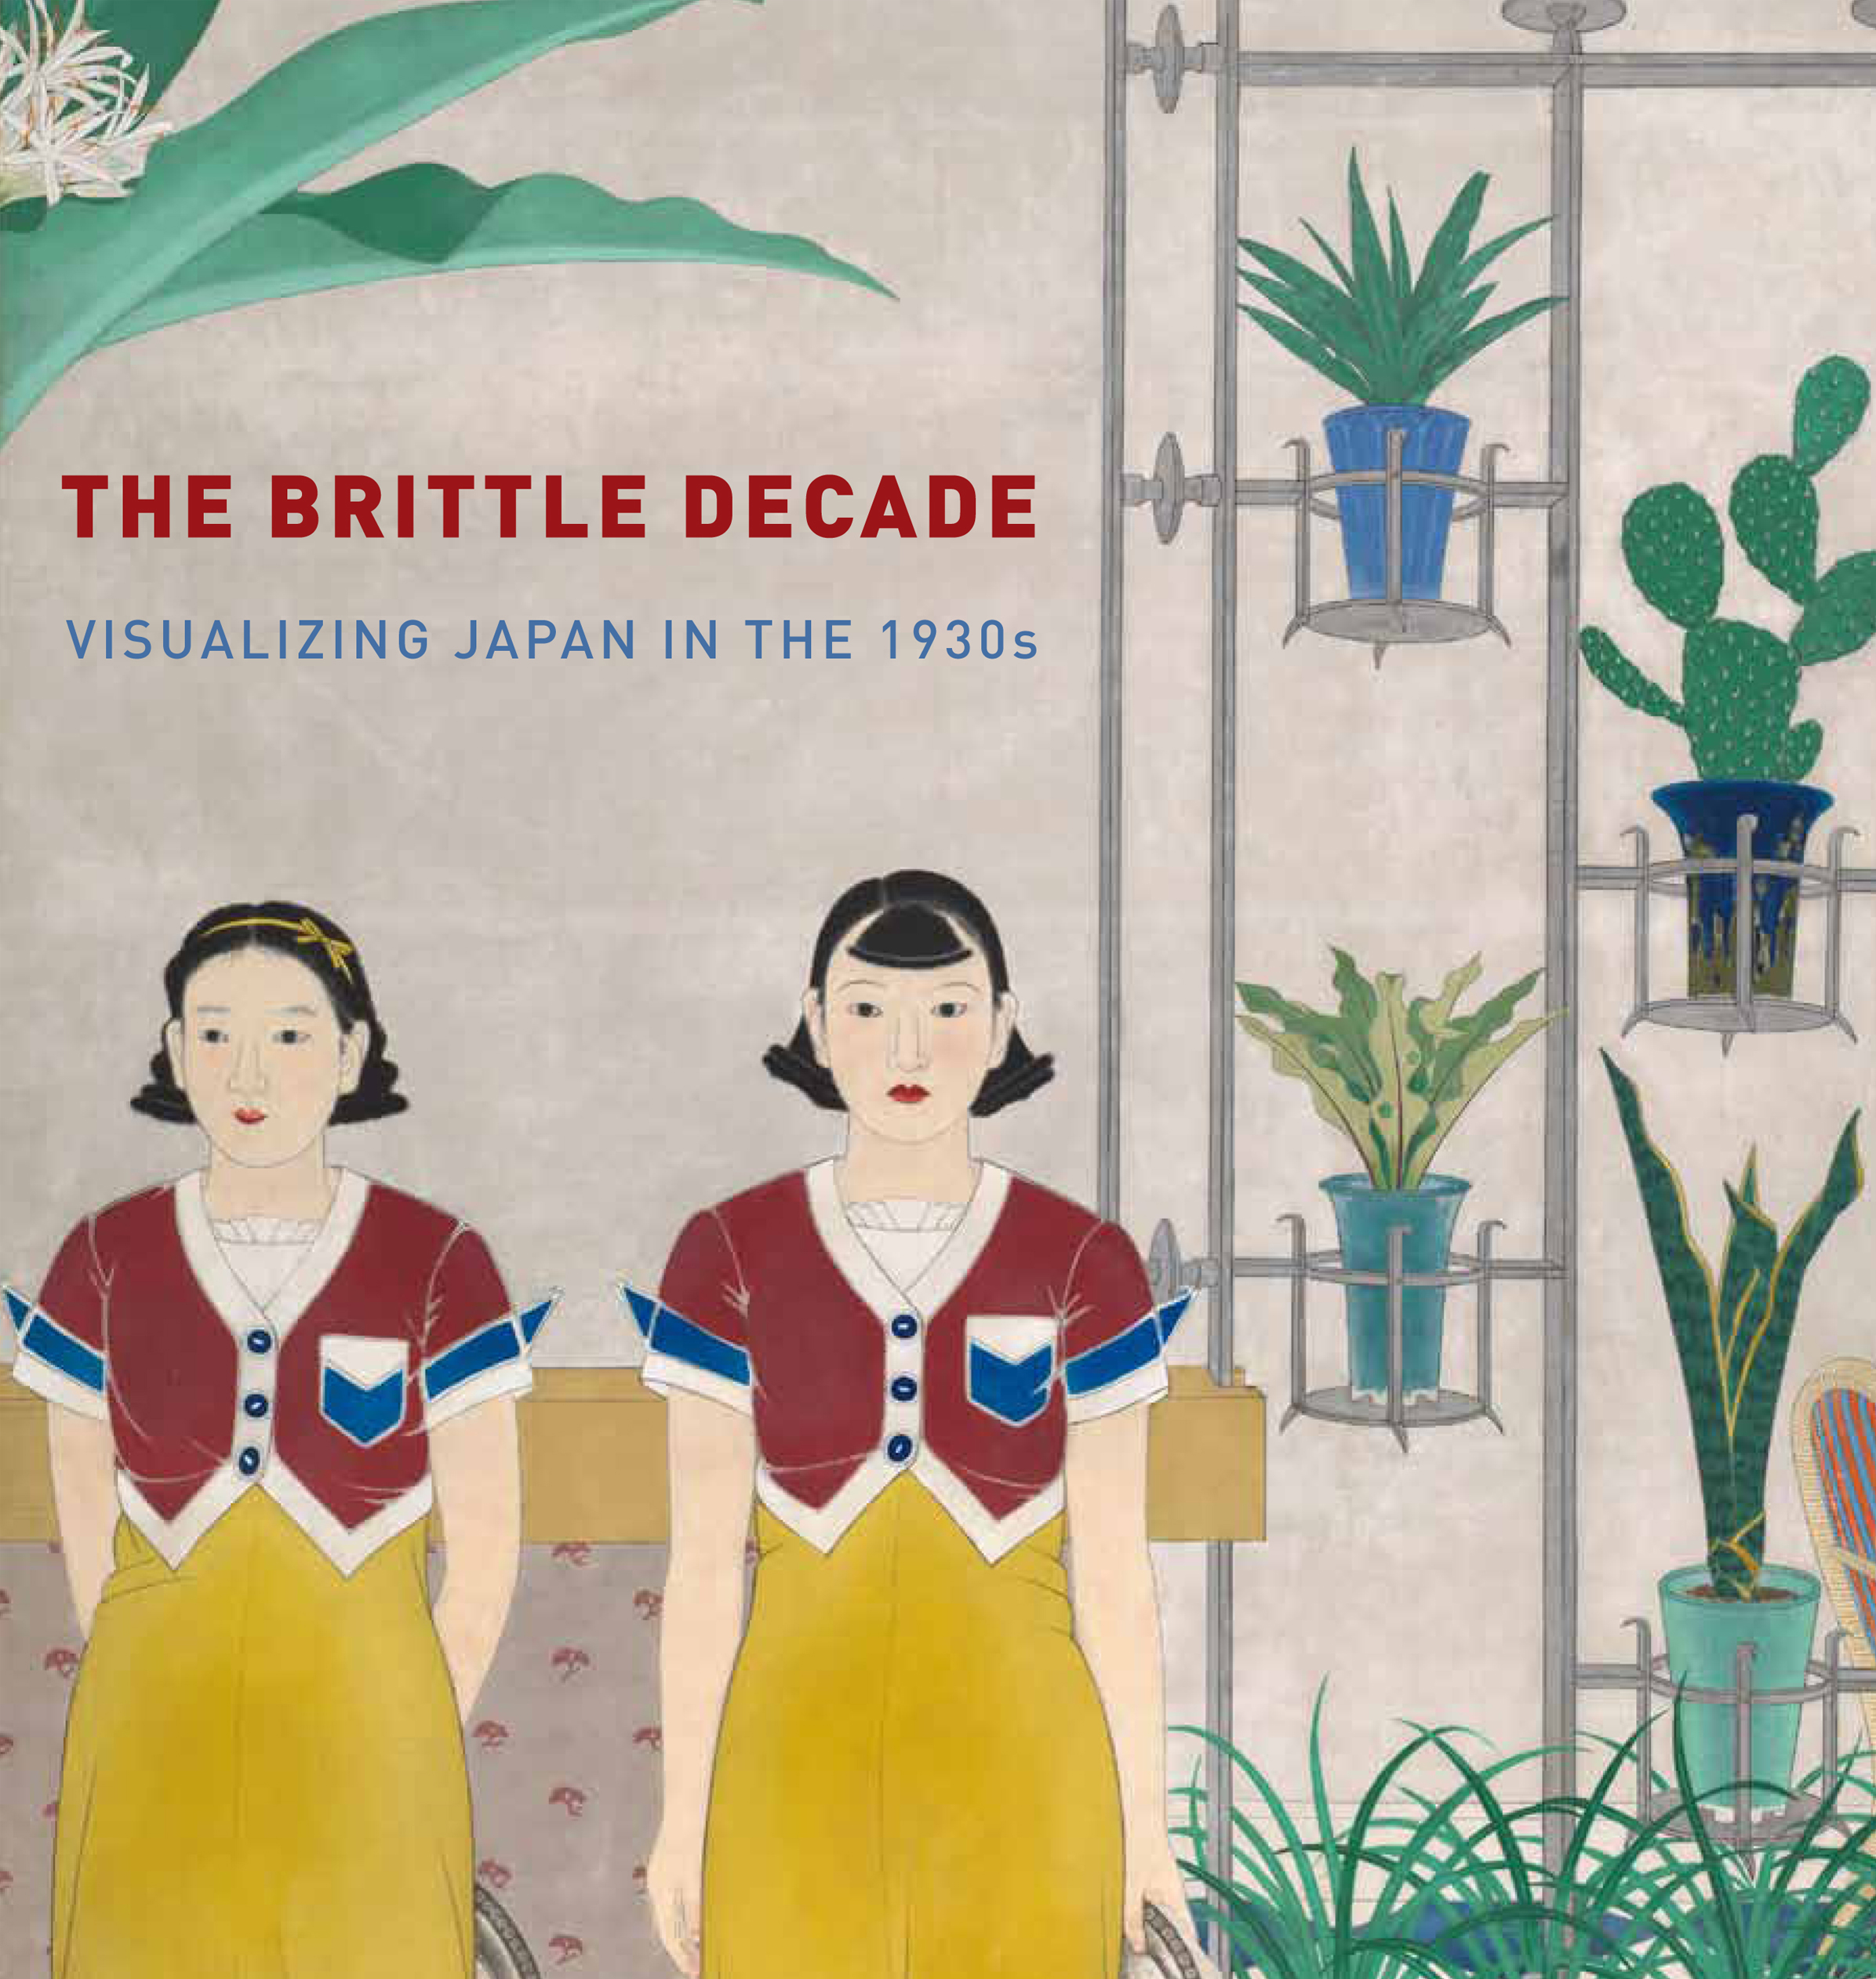 The brittle decade : visualizing Japan in the 1930s